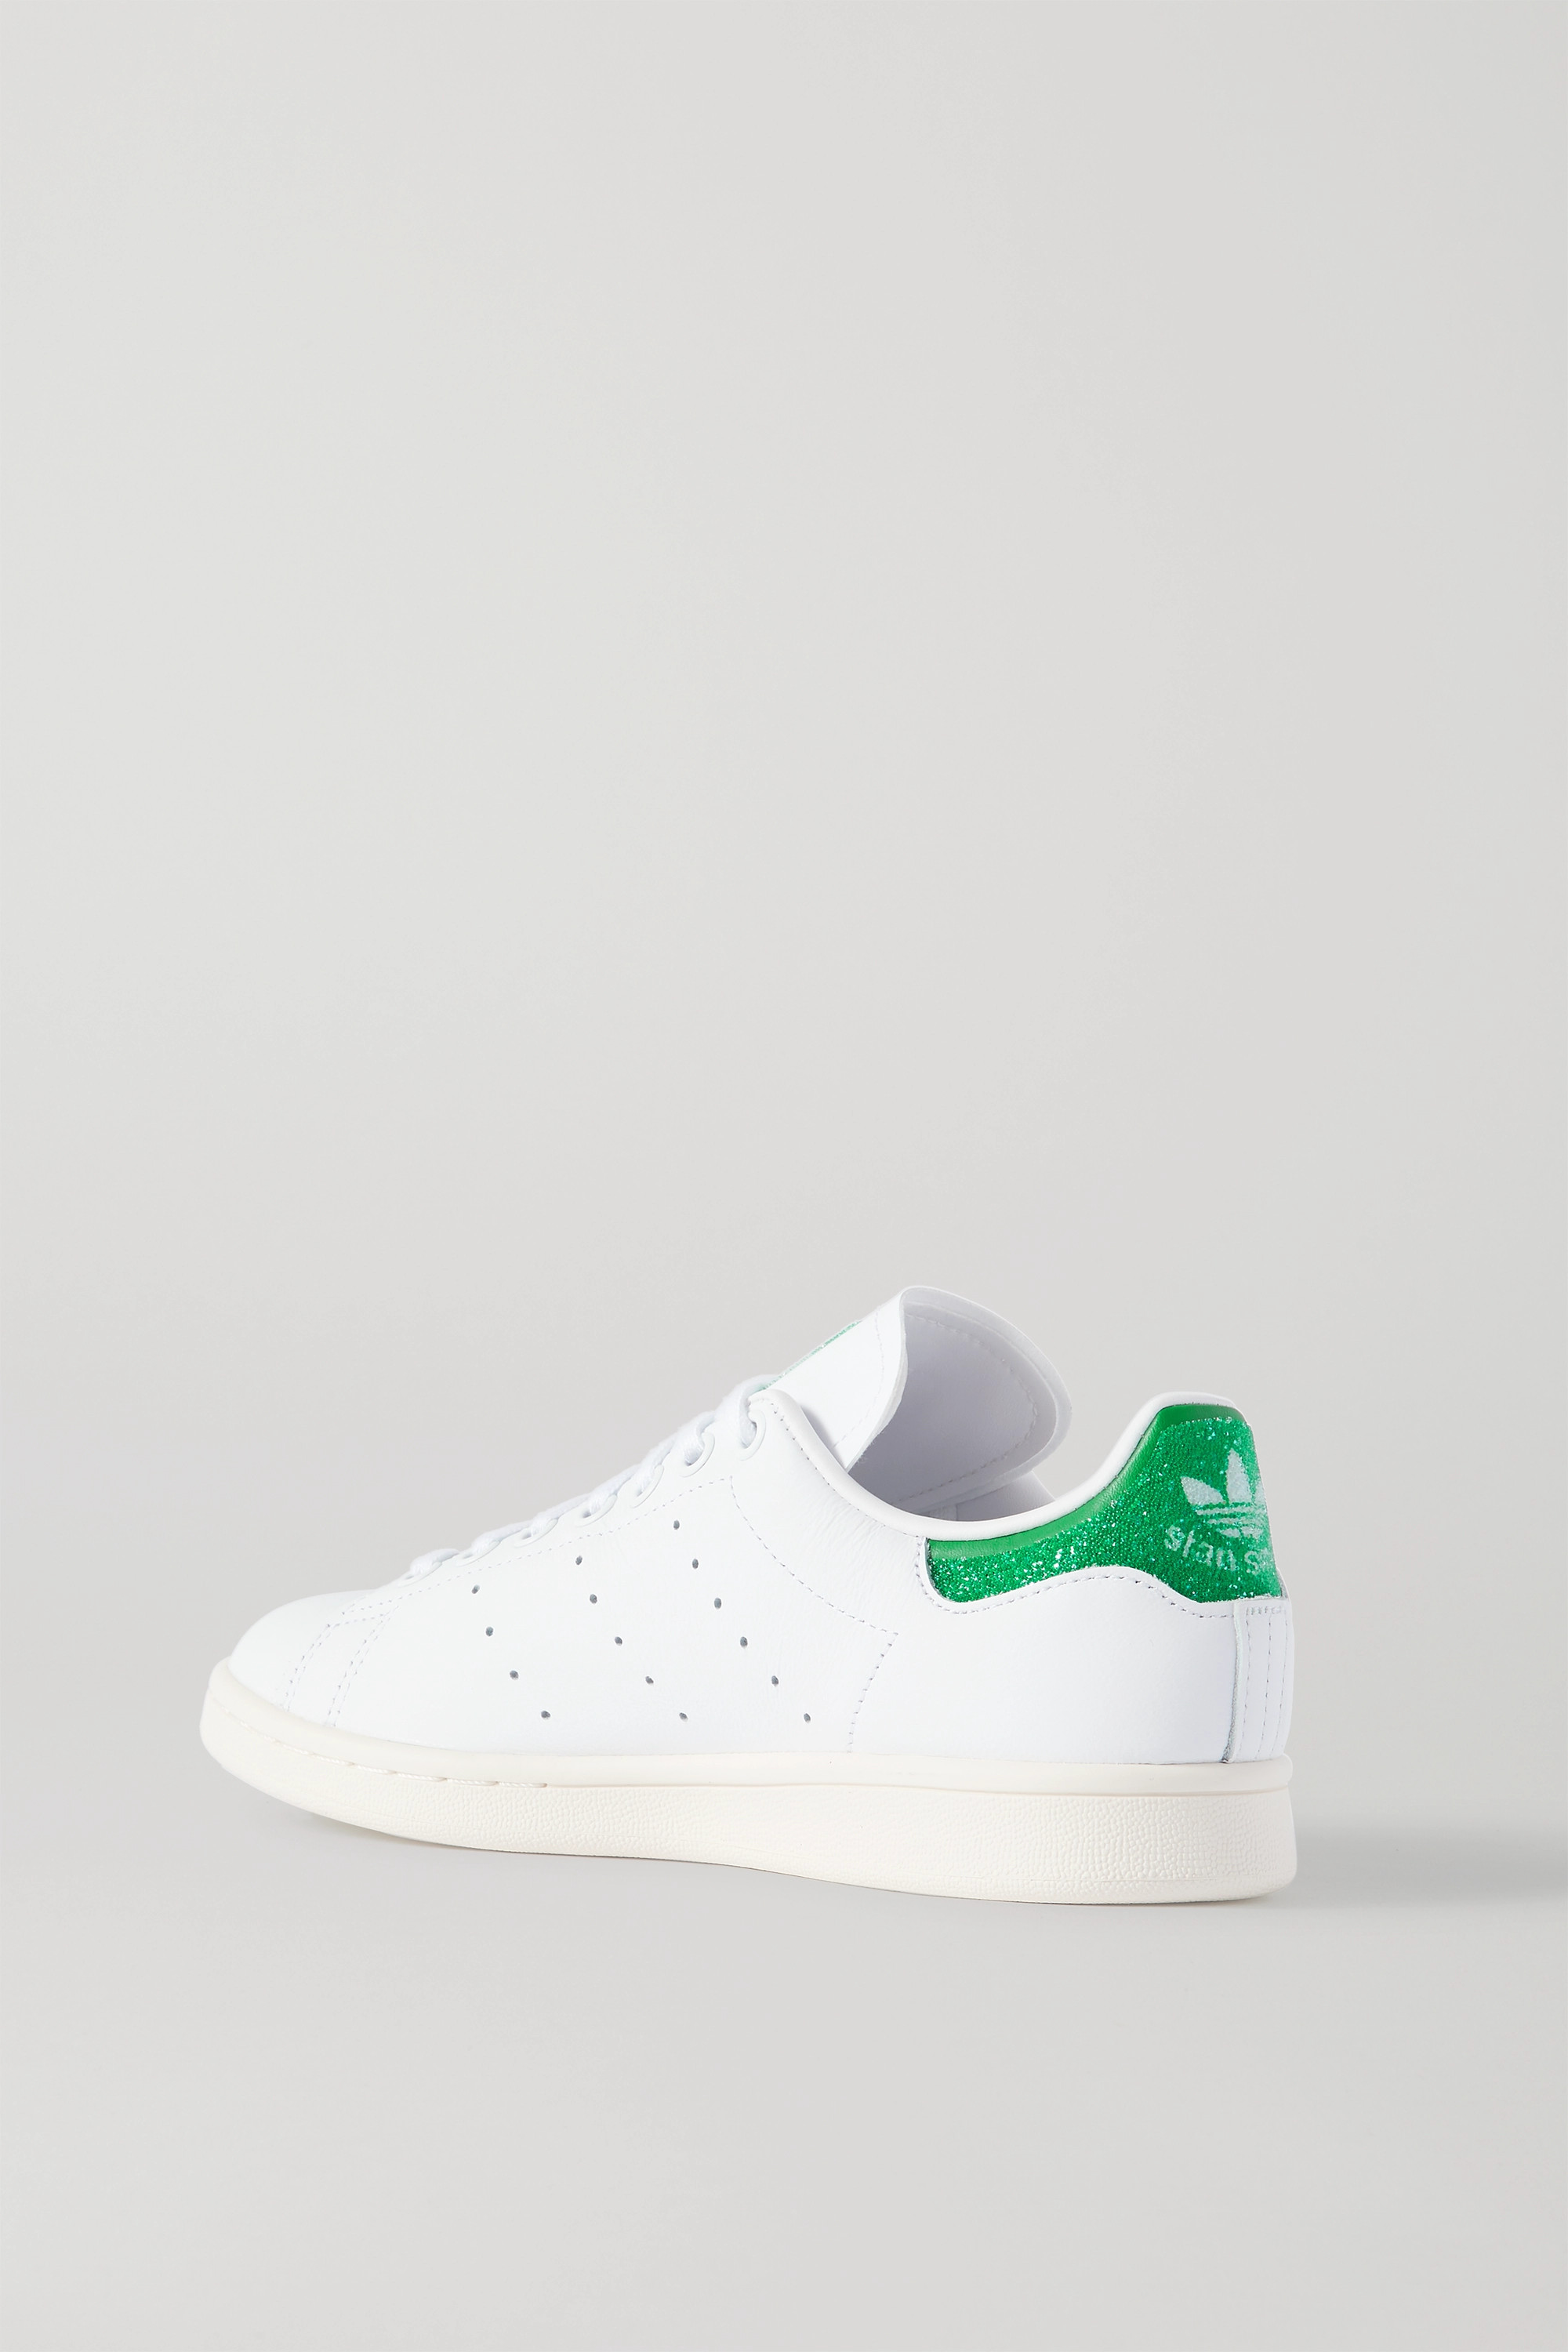 ADIDAS ORIGINALS + Swarovski Stan Smith leather sneakers